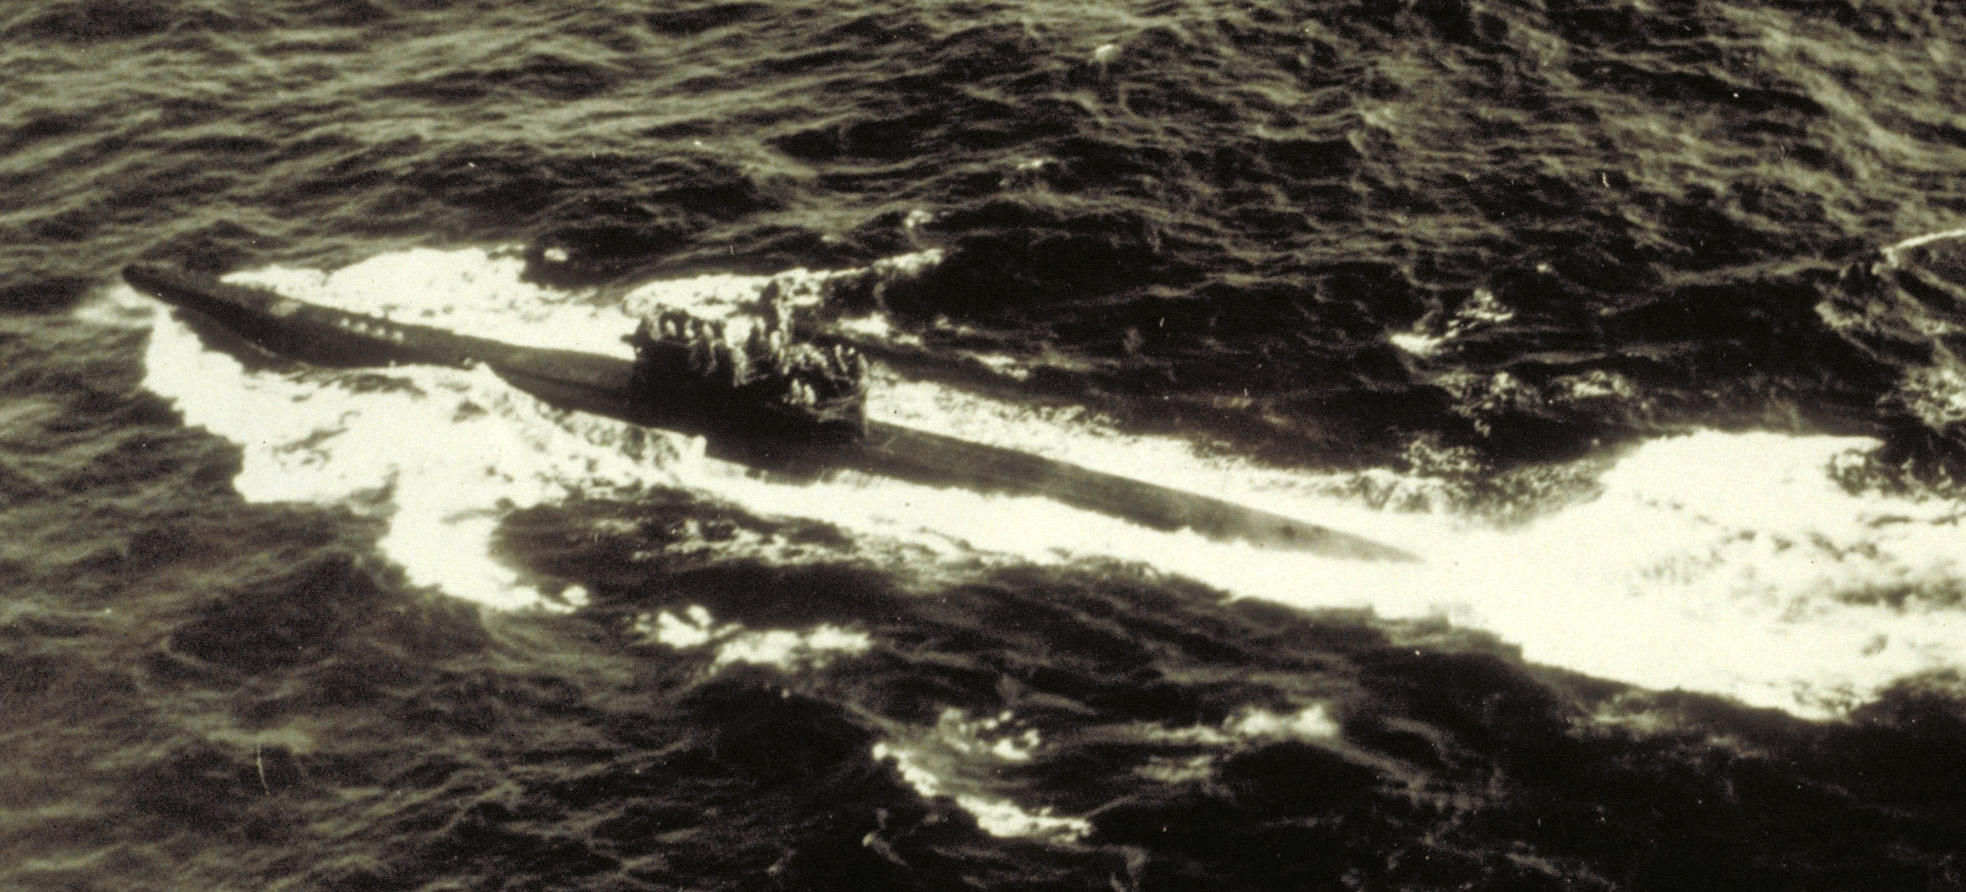 U-1105 at the time of its surrender